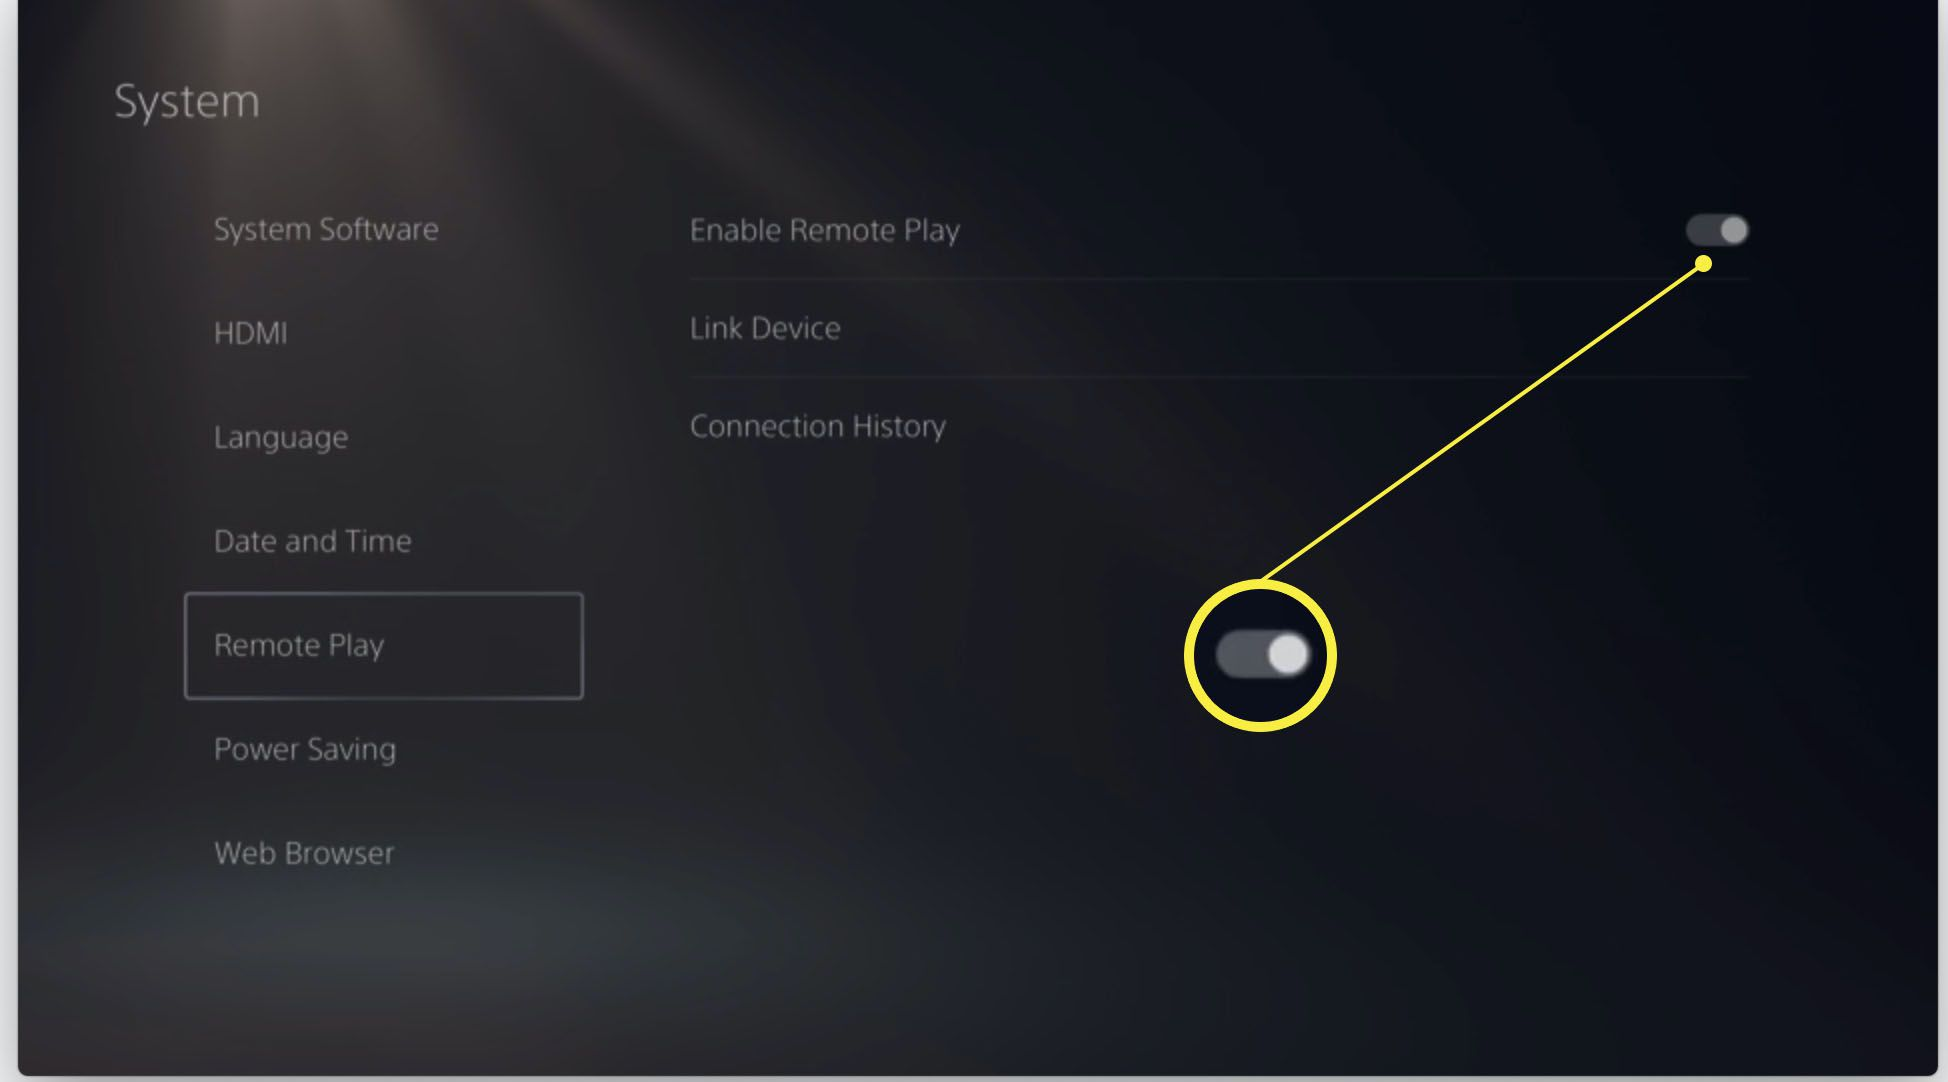 Playstation 5 with Enable Remote Play highlighted